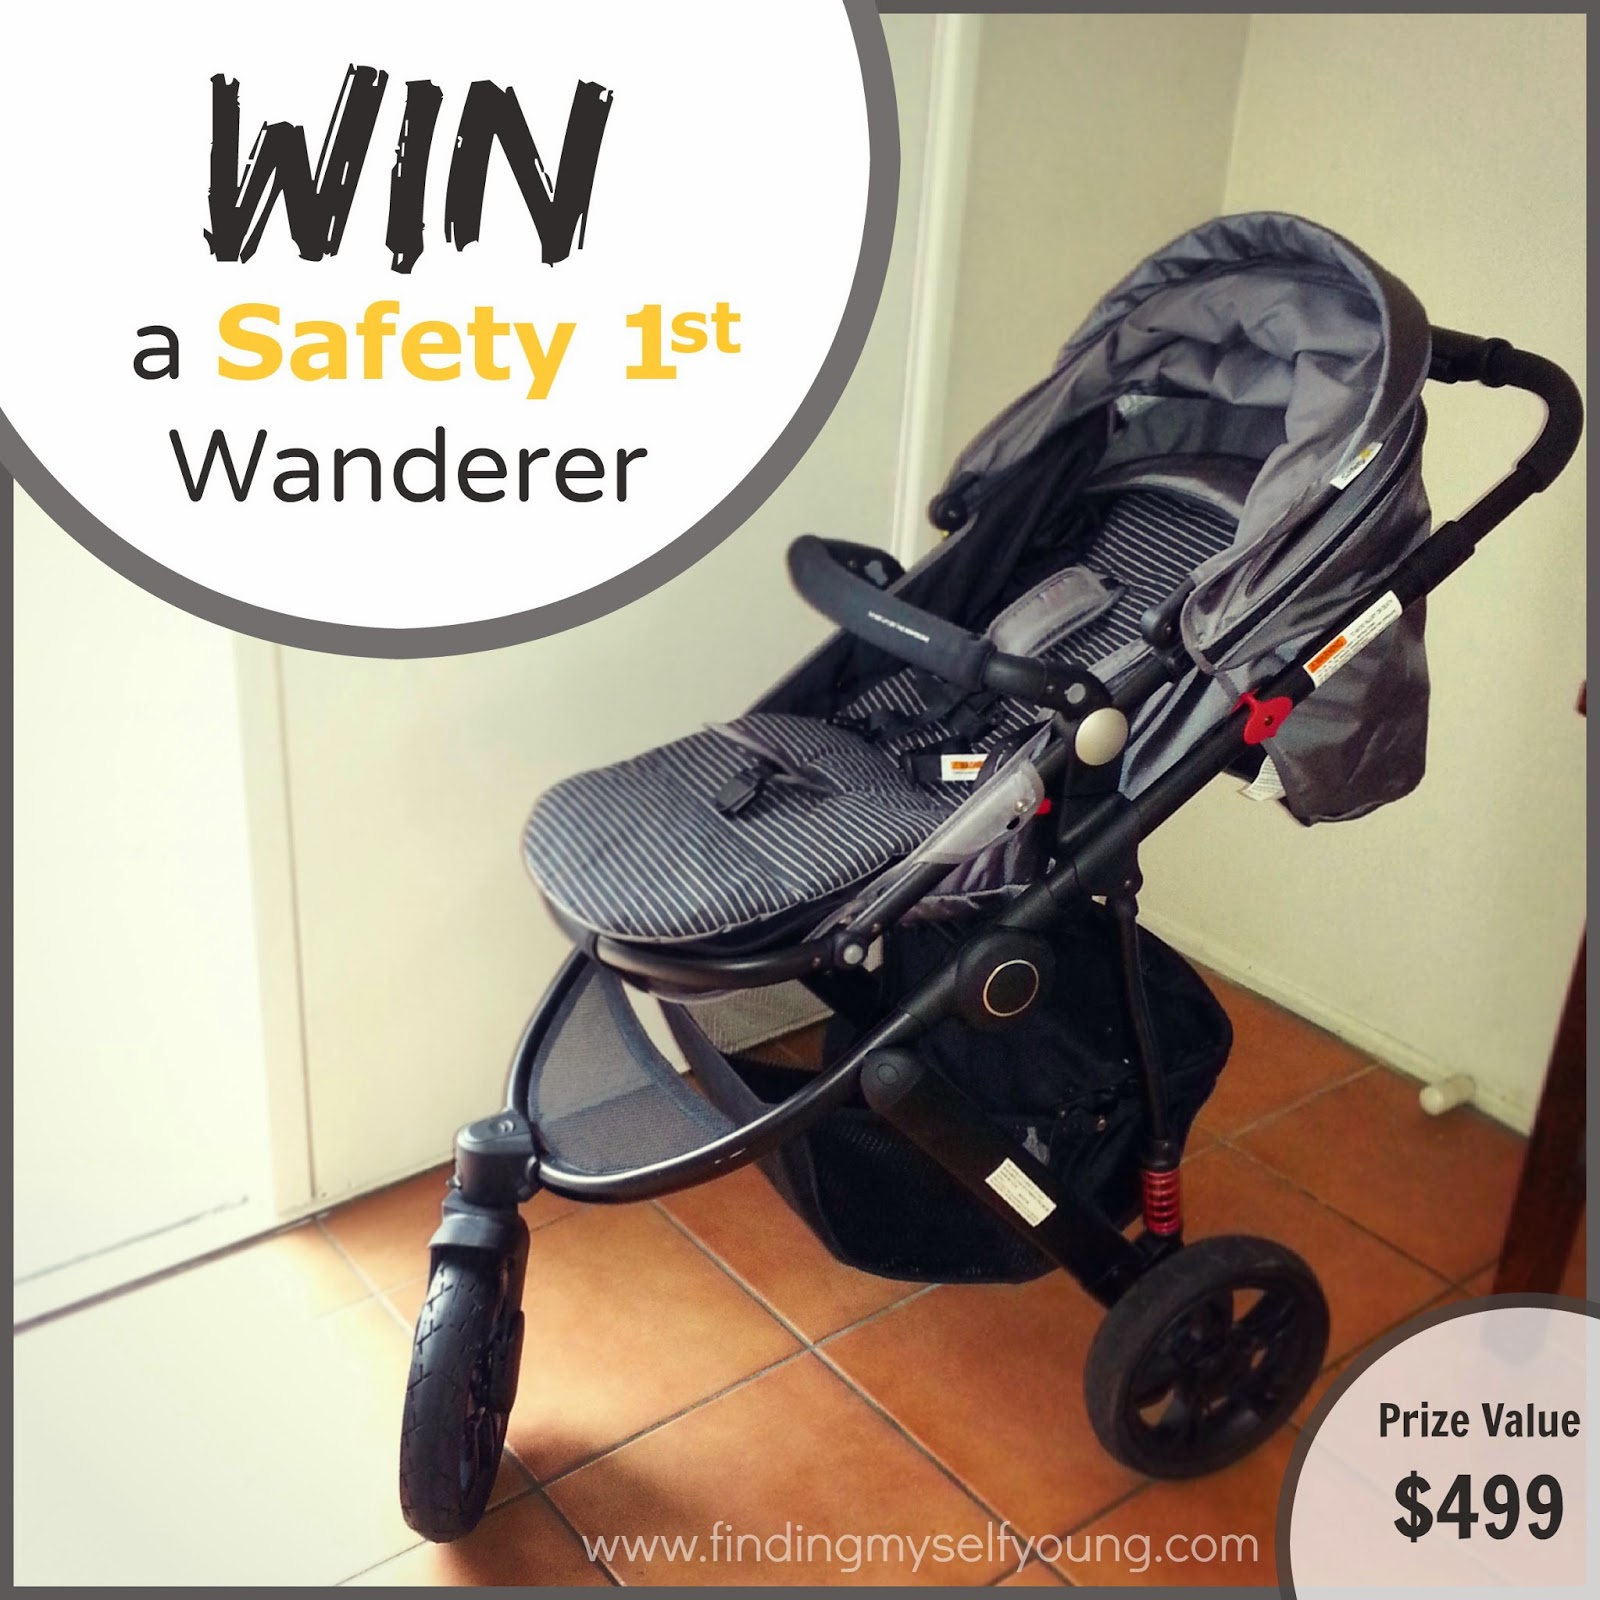 Win a safety 1st wanderer 3 wheel pram